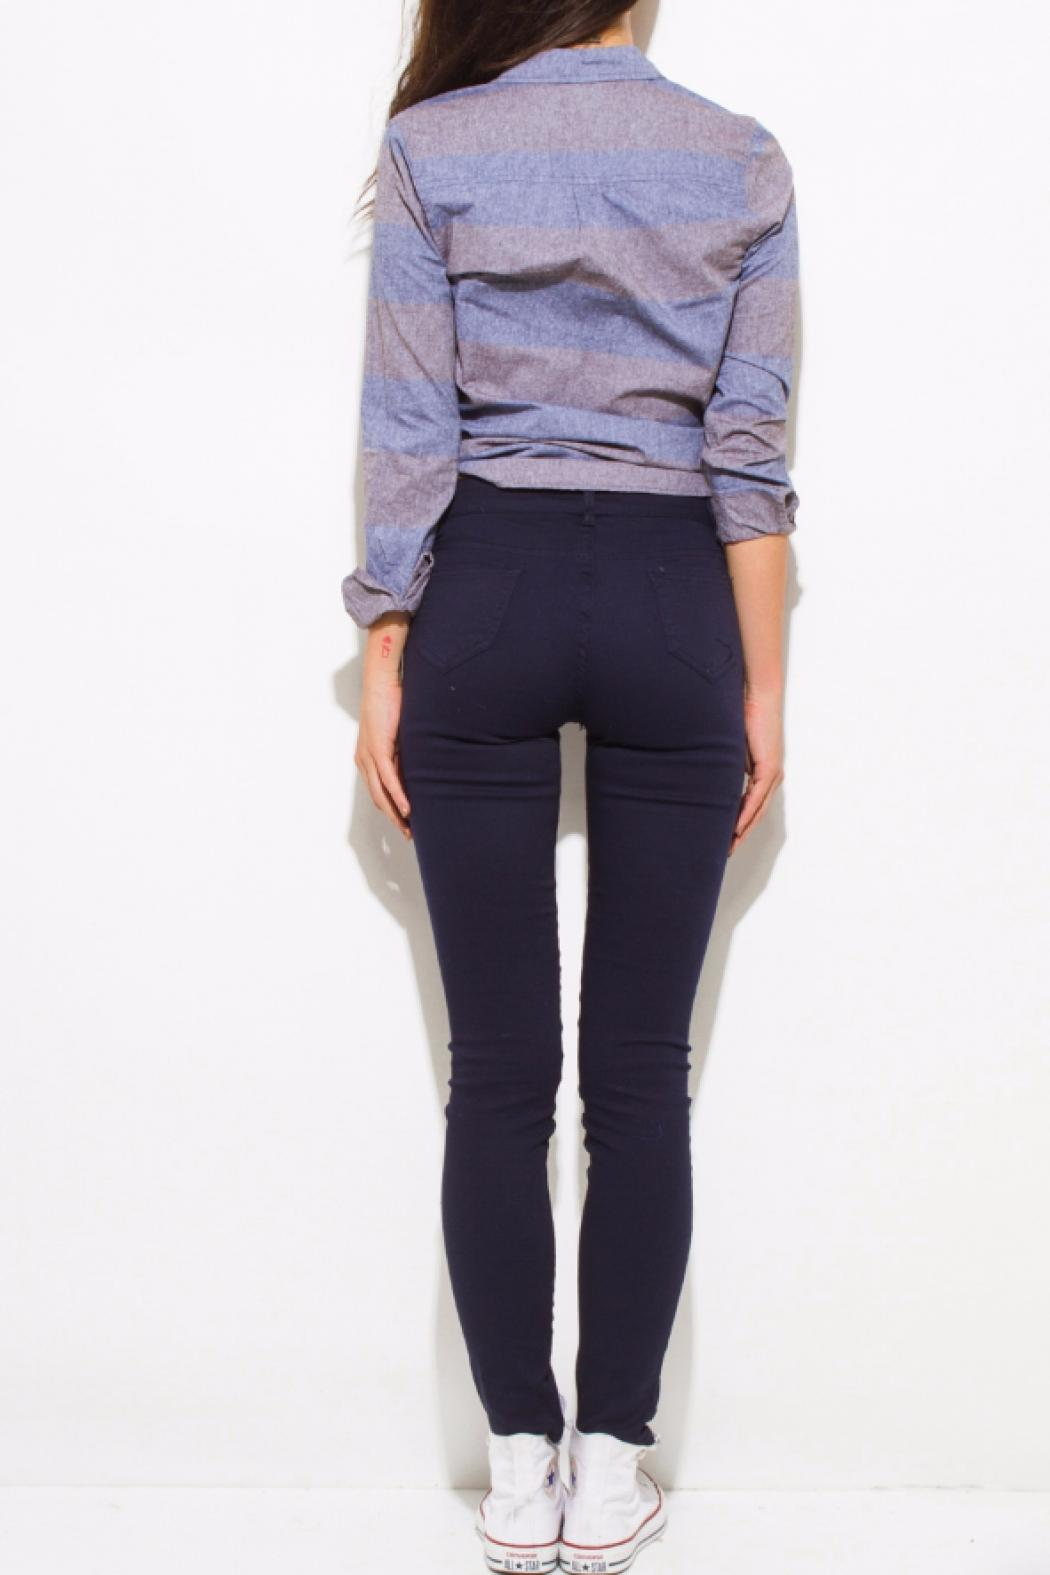 OC Avenue Stretch Navy Jeans - Back Cropped Image